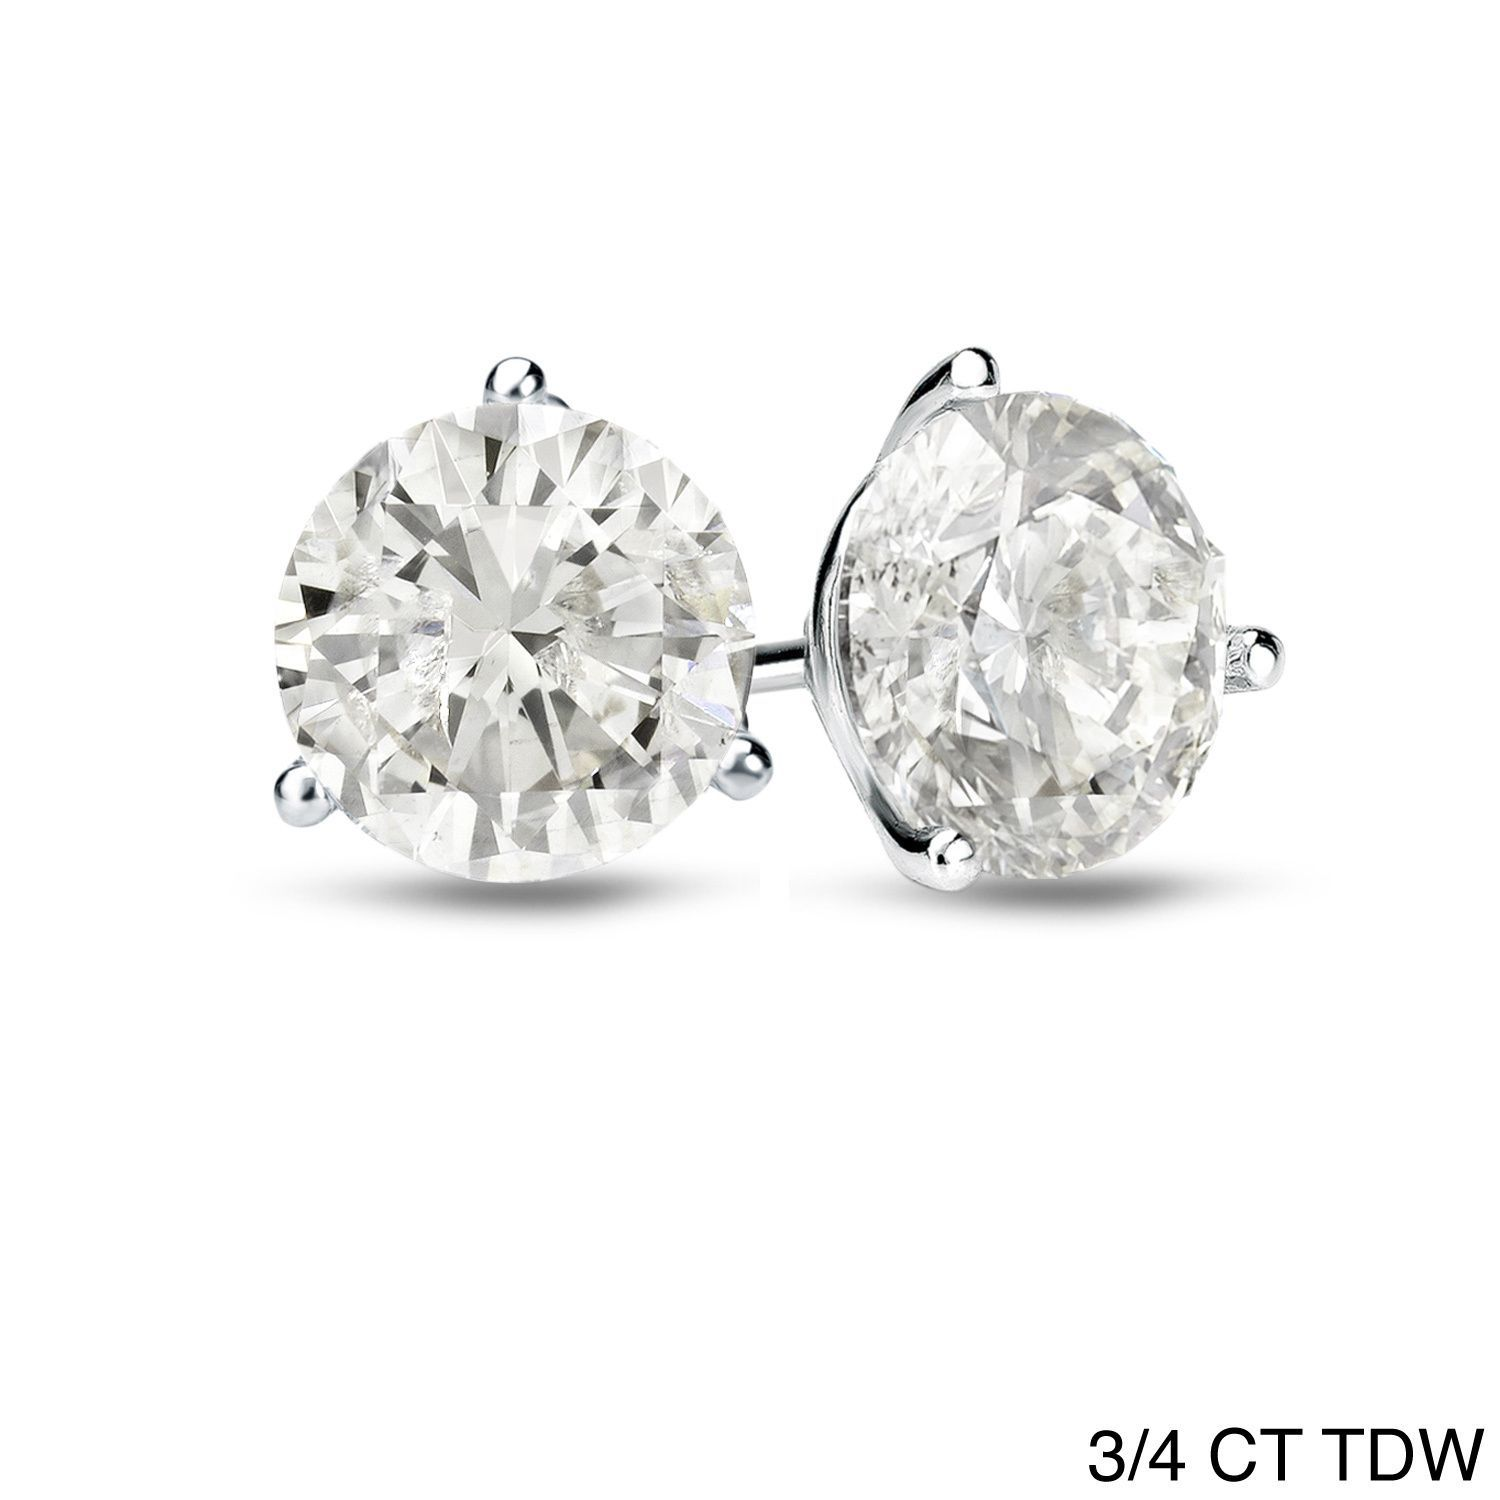 Platinum 1 4 Ct To 3 4 Ct Tdw 3 Prong Martini Diamond Stud Earrings By Auriya Diamond Studs Platinum Metal Jewelry